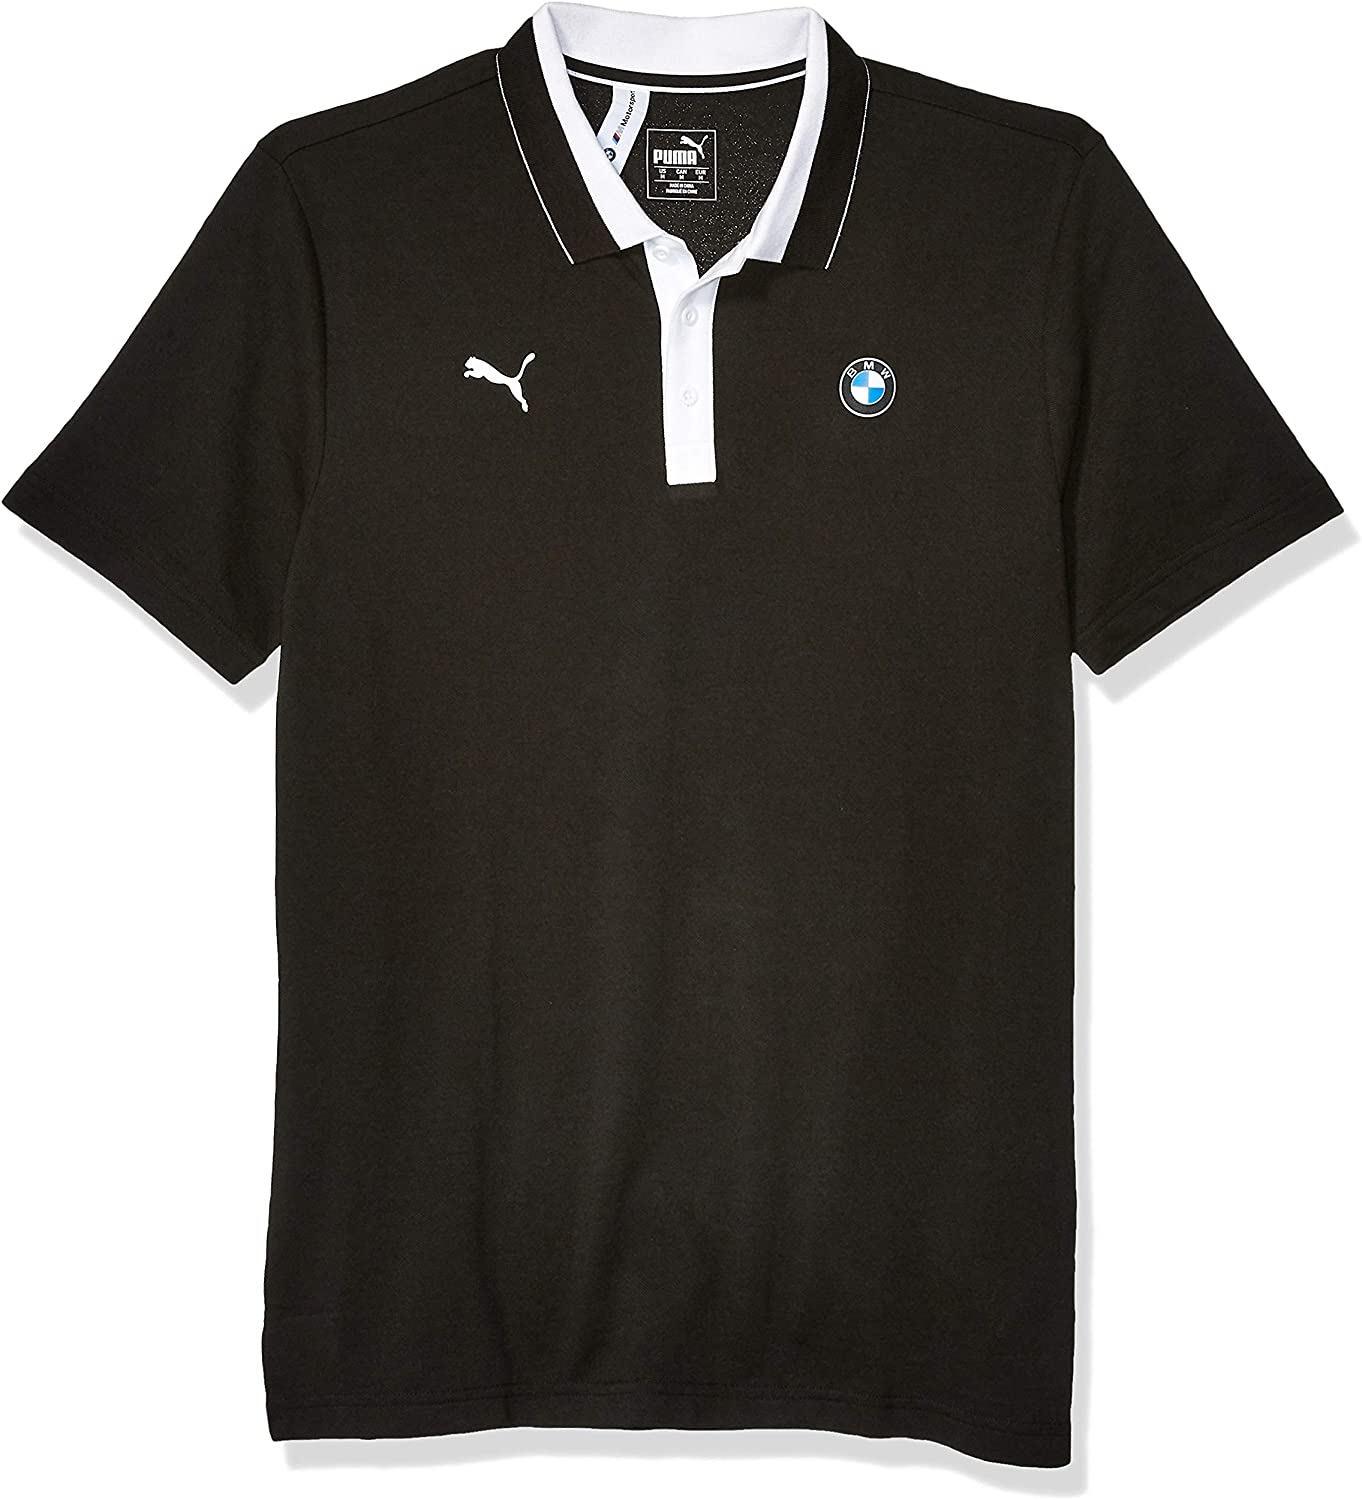 PUMA Men's Ranking integrated 1st place Denver Mall BMW Polo Graphic Motorsport